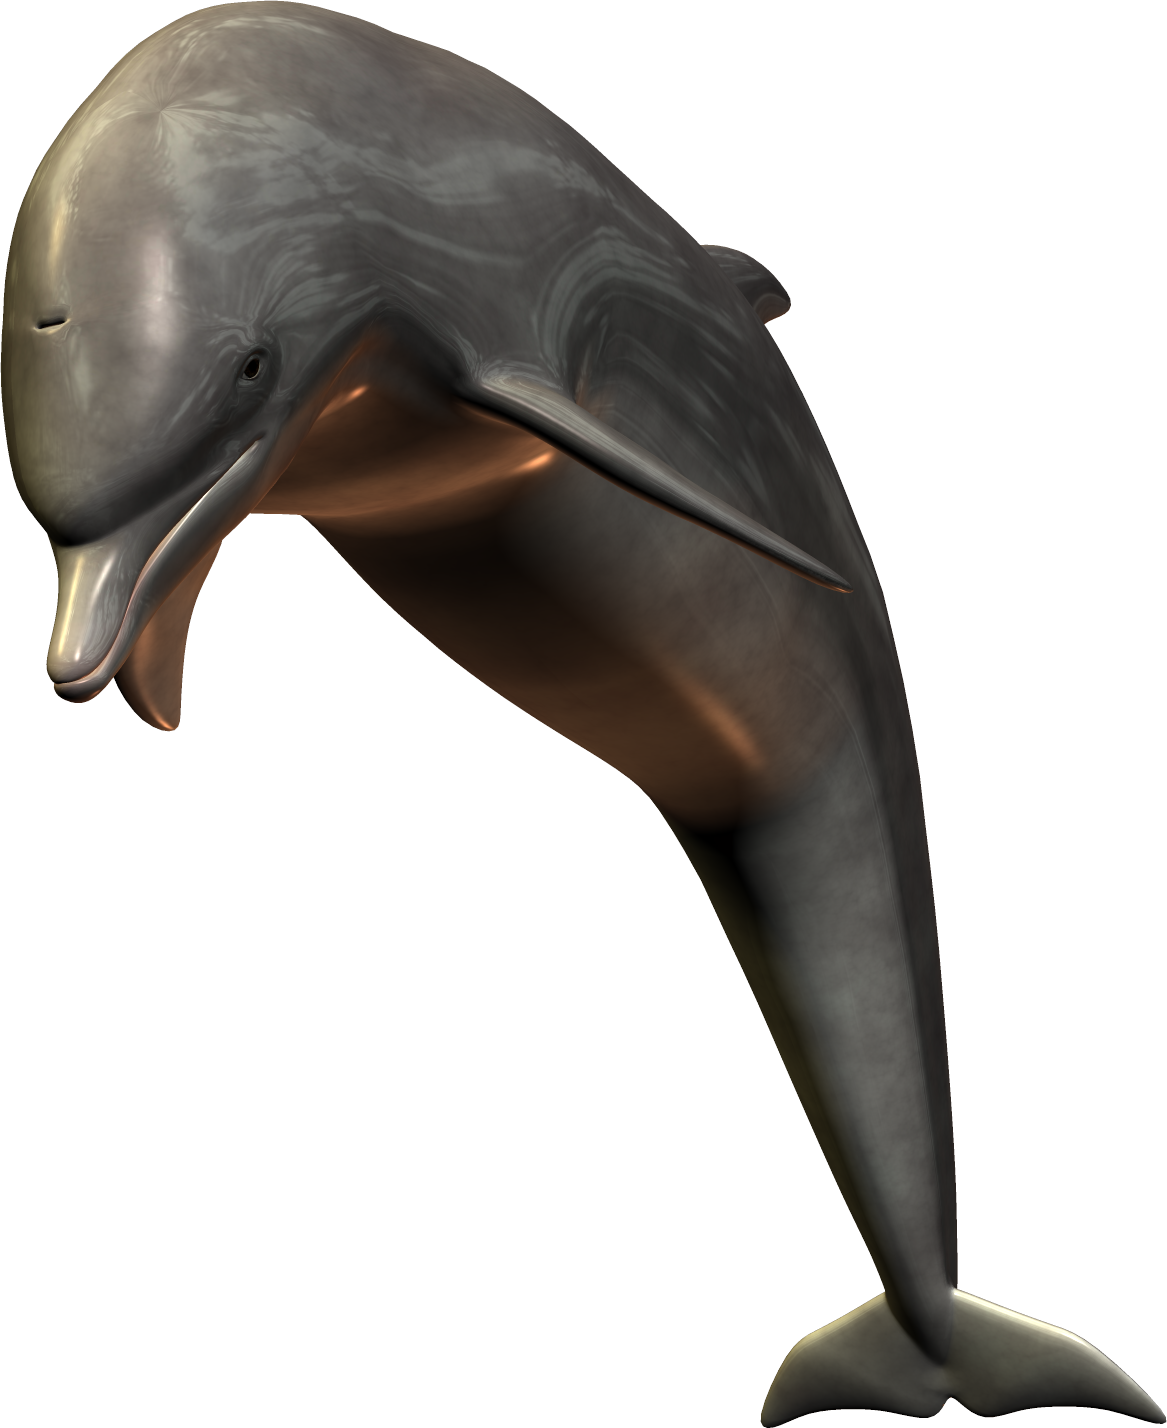 Clipart dolphin maui dolphin. Png image